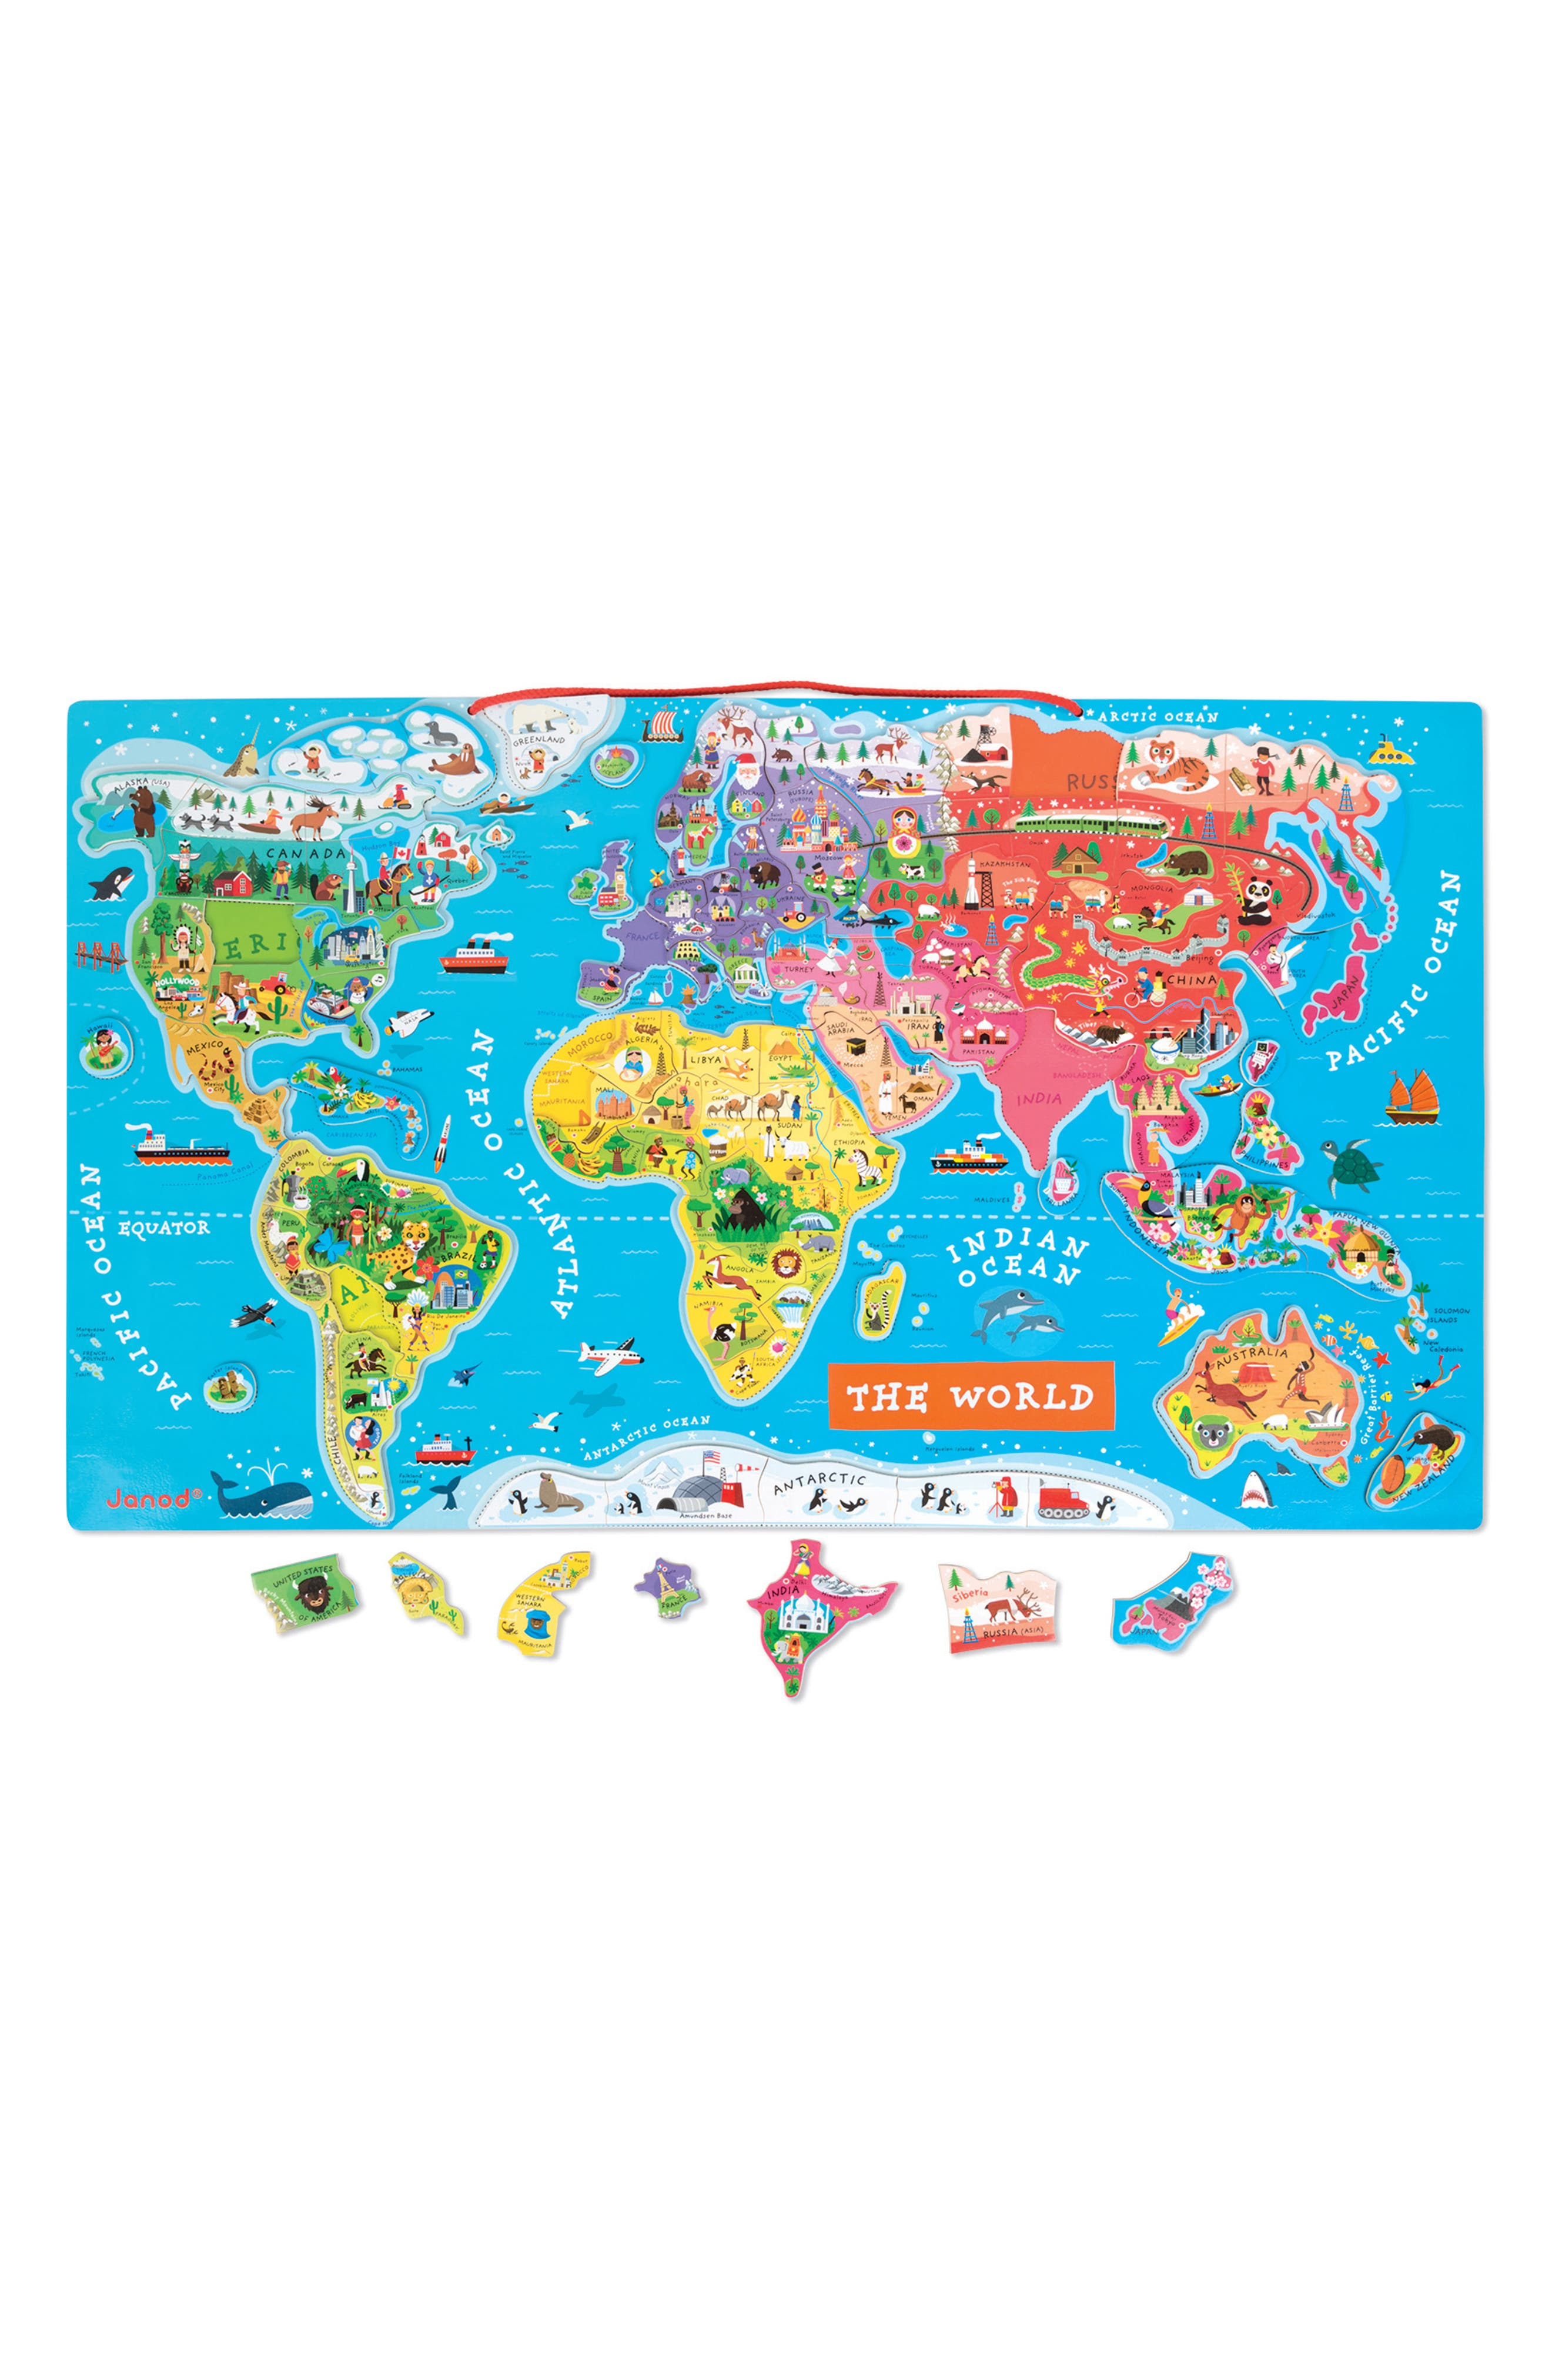 93-Piece Magnetic World Map,                             Alternate thumbnail 3, color,                             NO COLOR